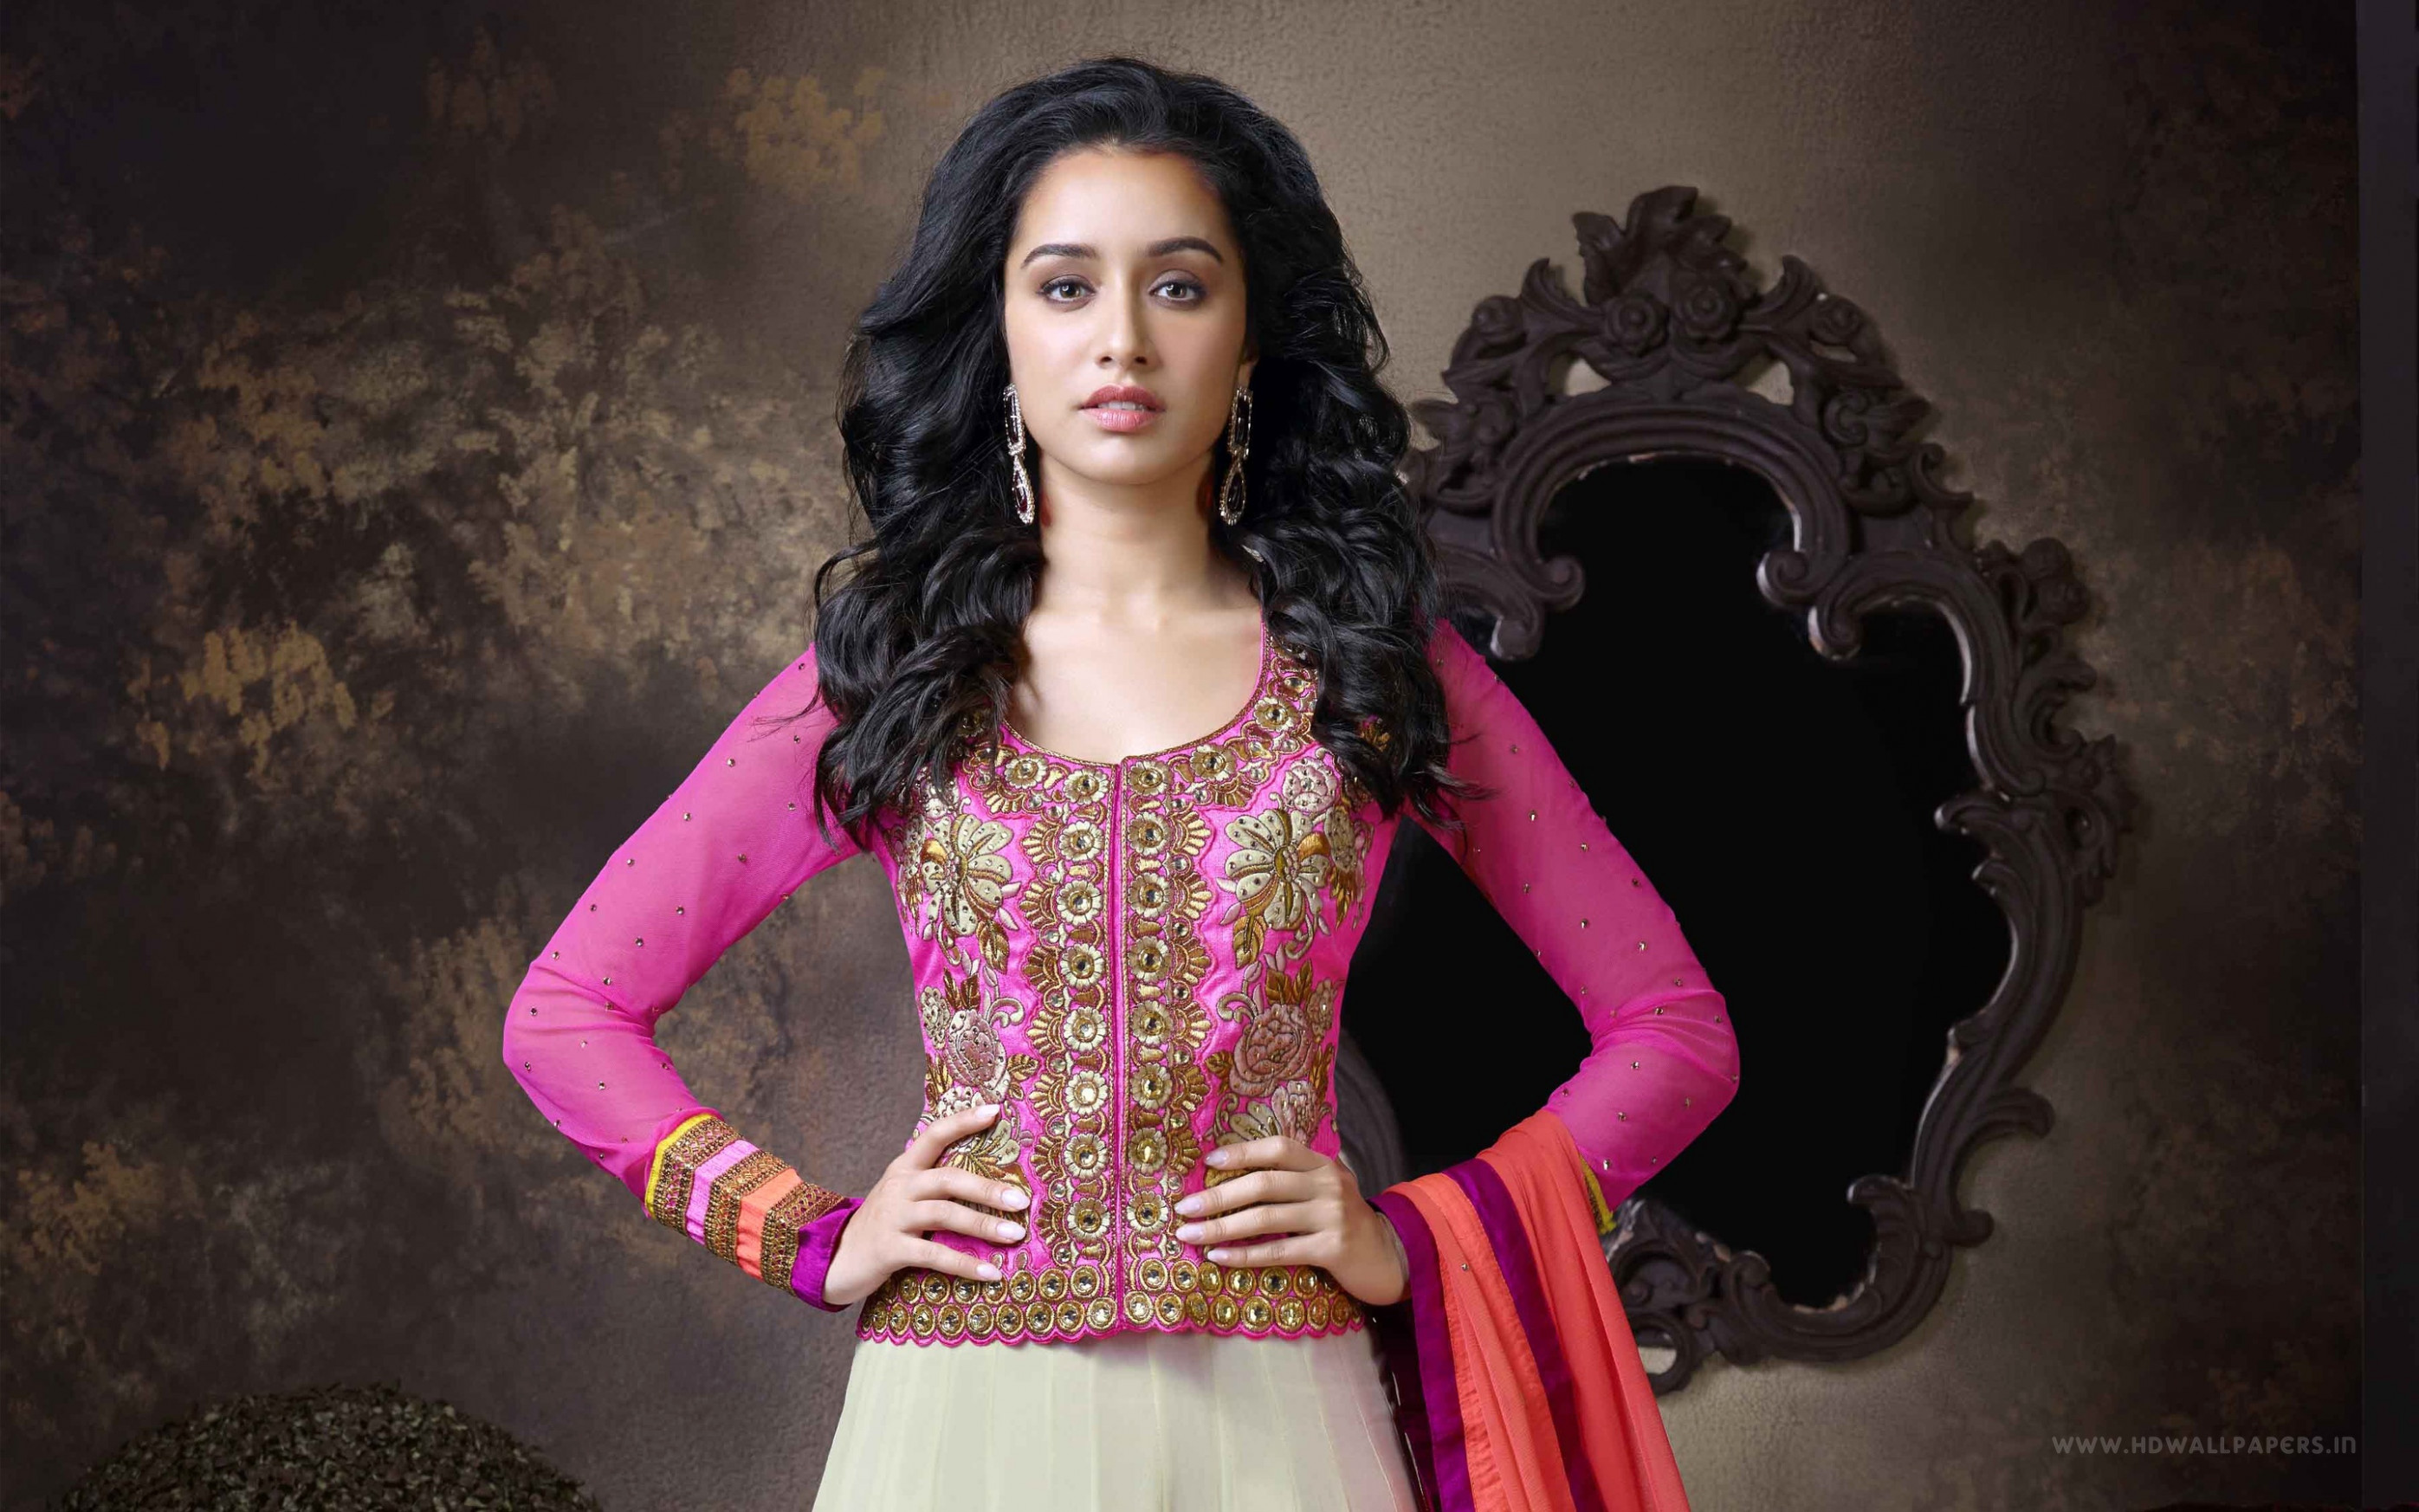 Shraddha Kapoor Bollywood Actress in lehenga choli ...